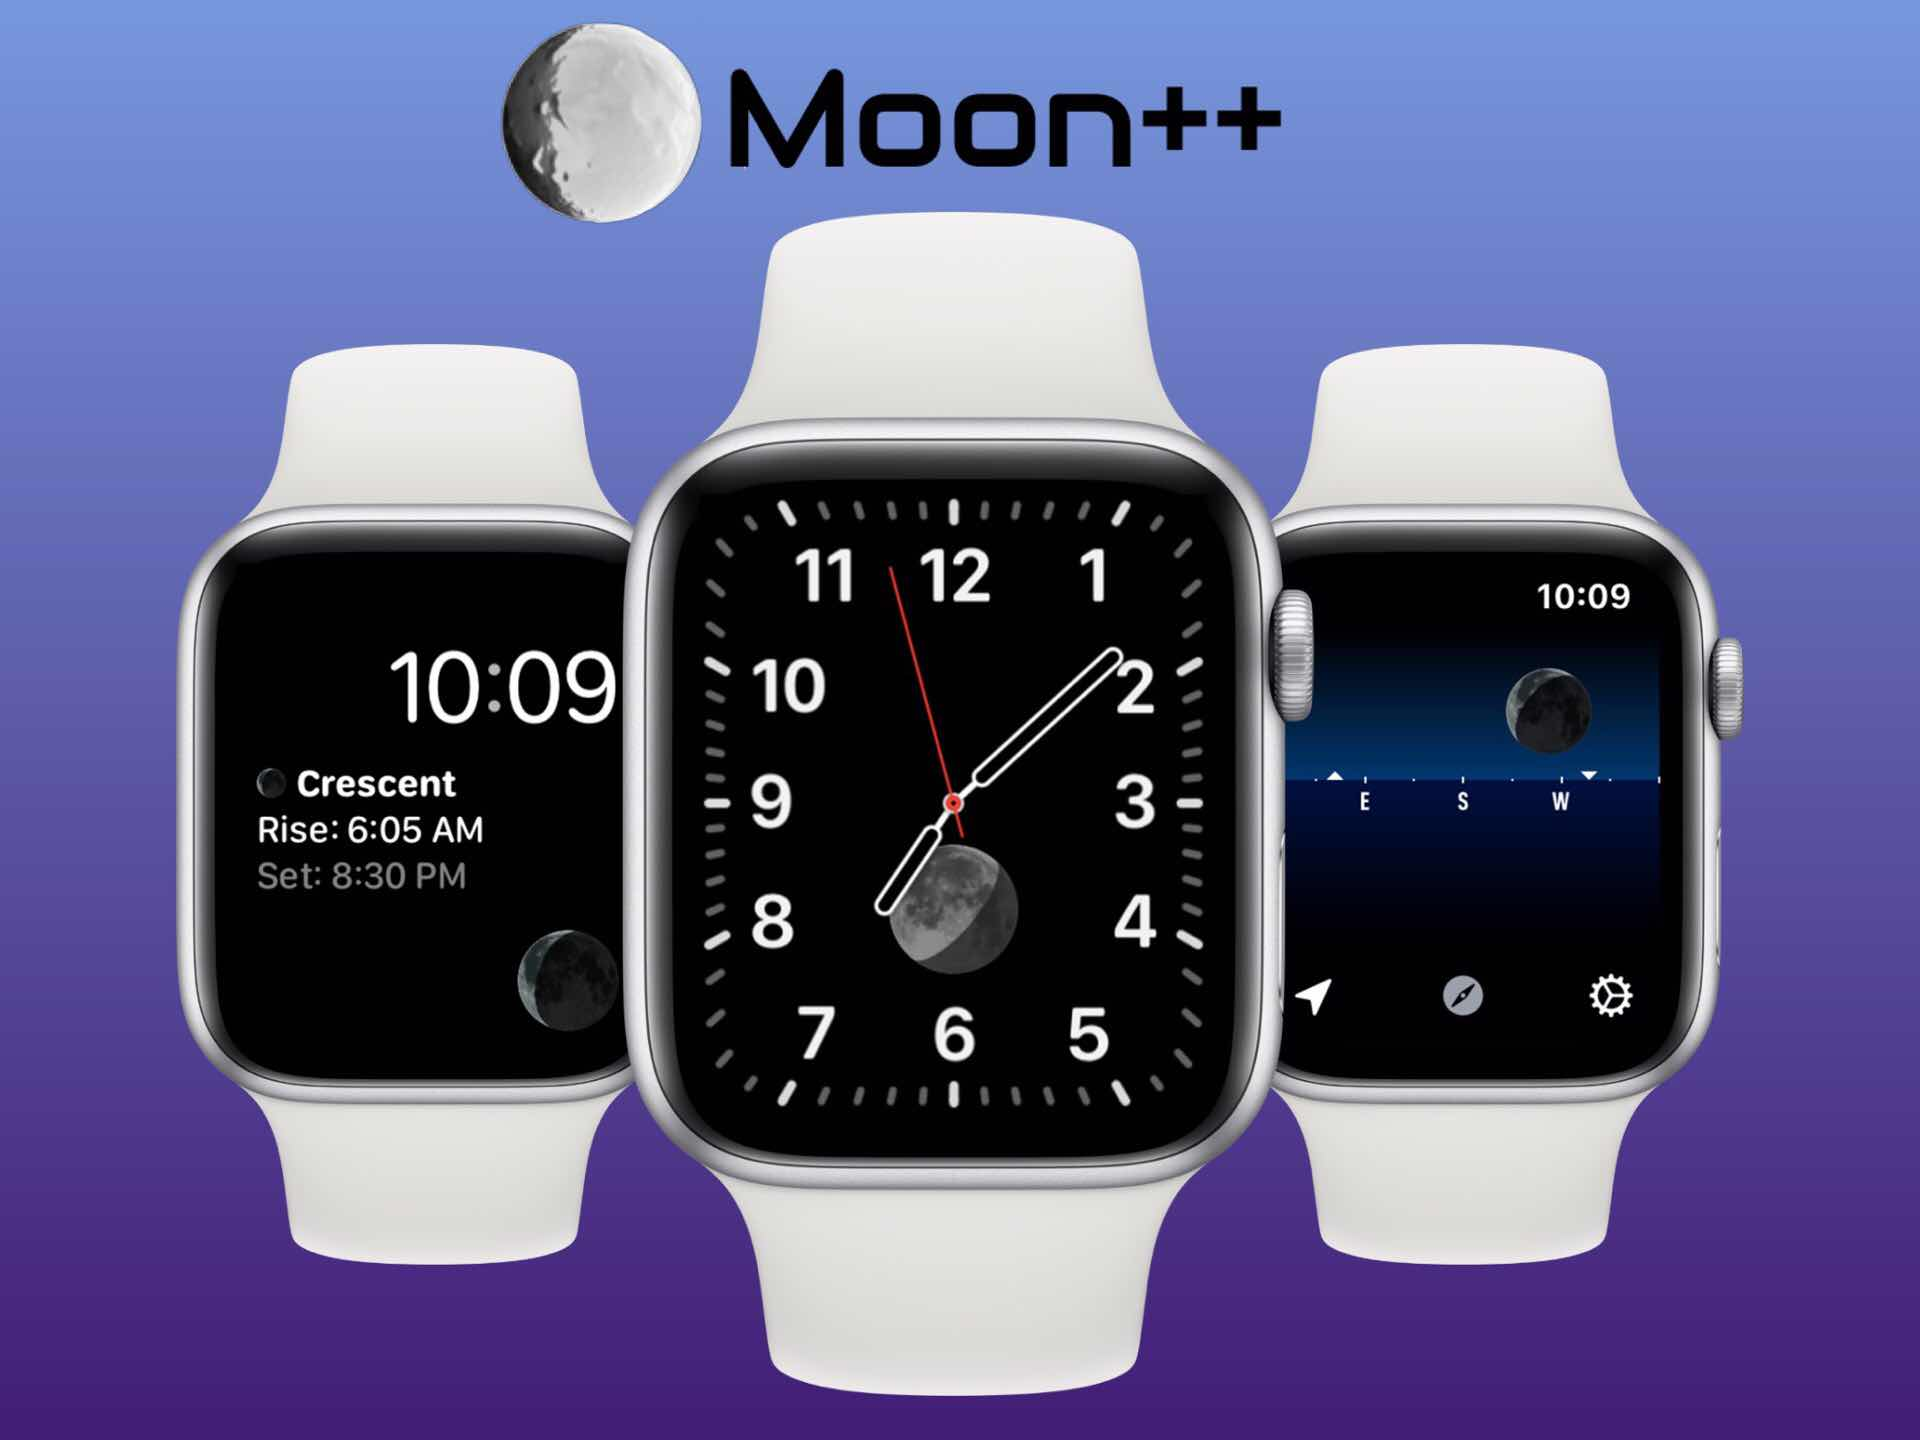 Moon++ for Apple Watch